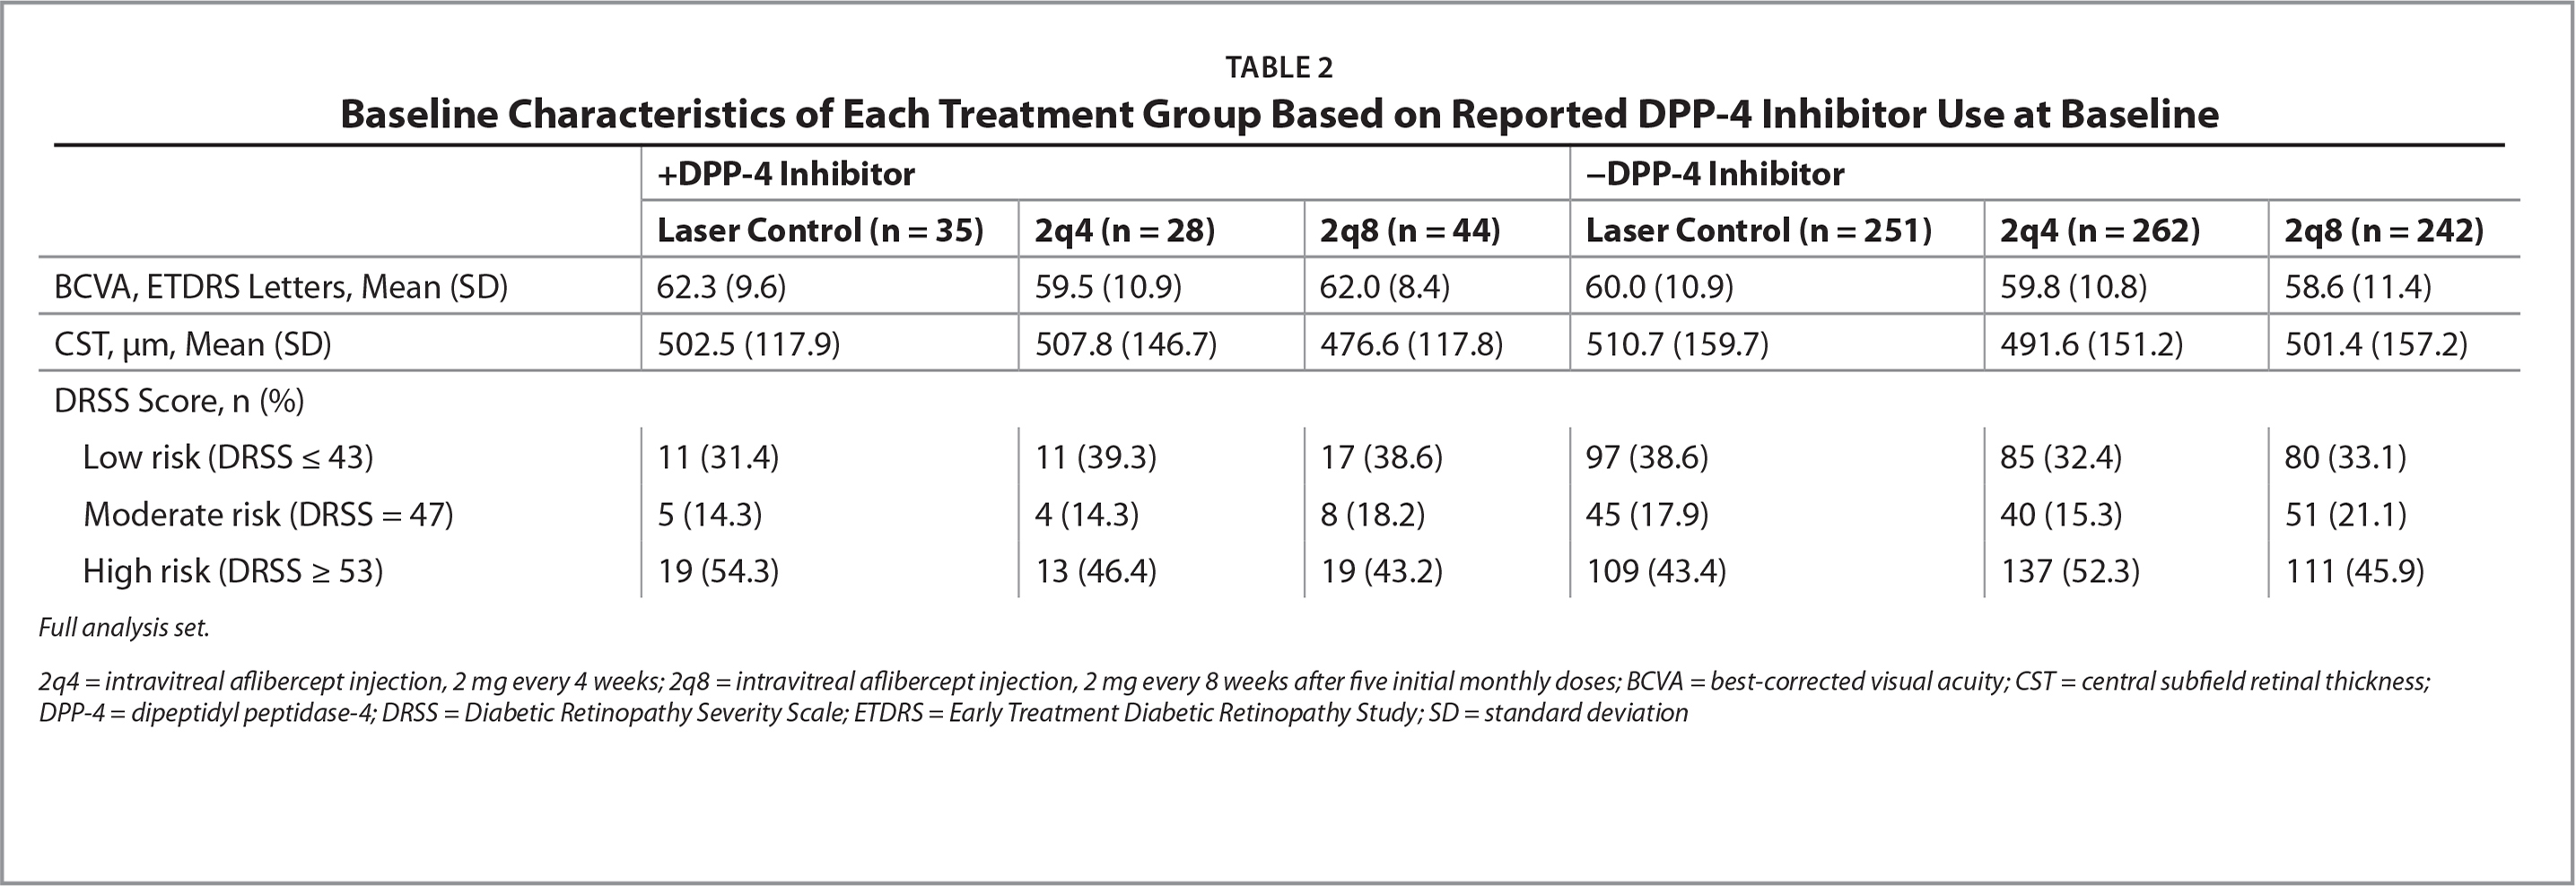 Baseline Characteristics of Each Treatment Group Based on Reported DPP-4 Inhibitor Use at Baseline